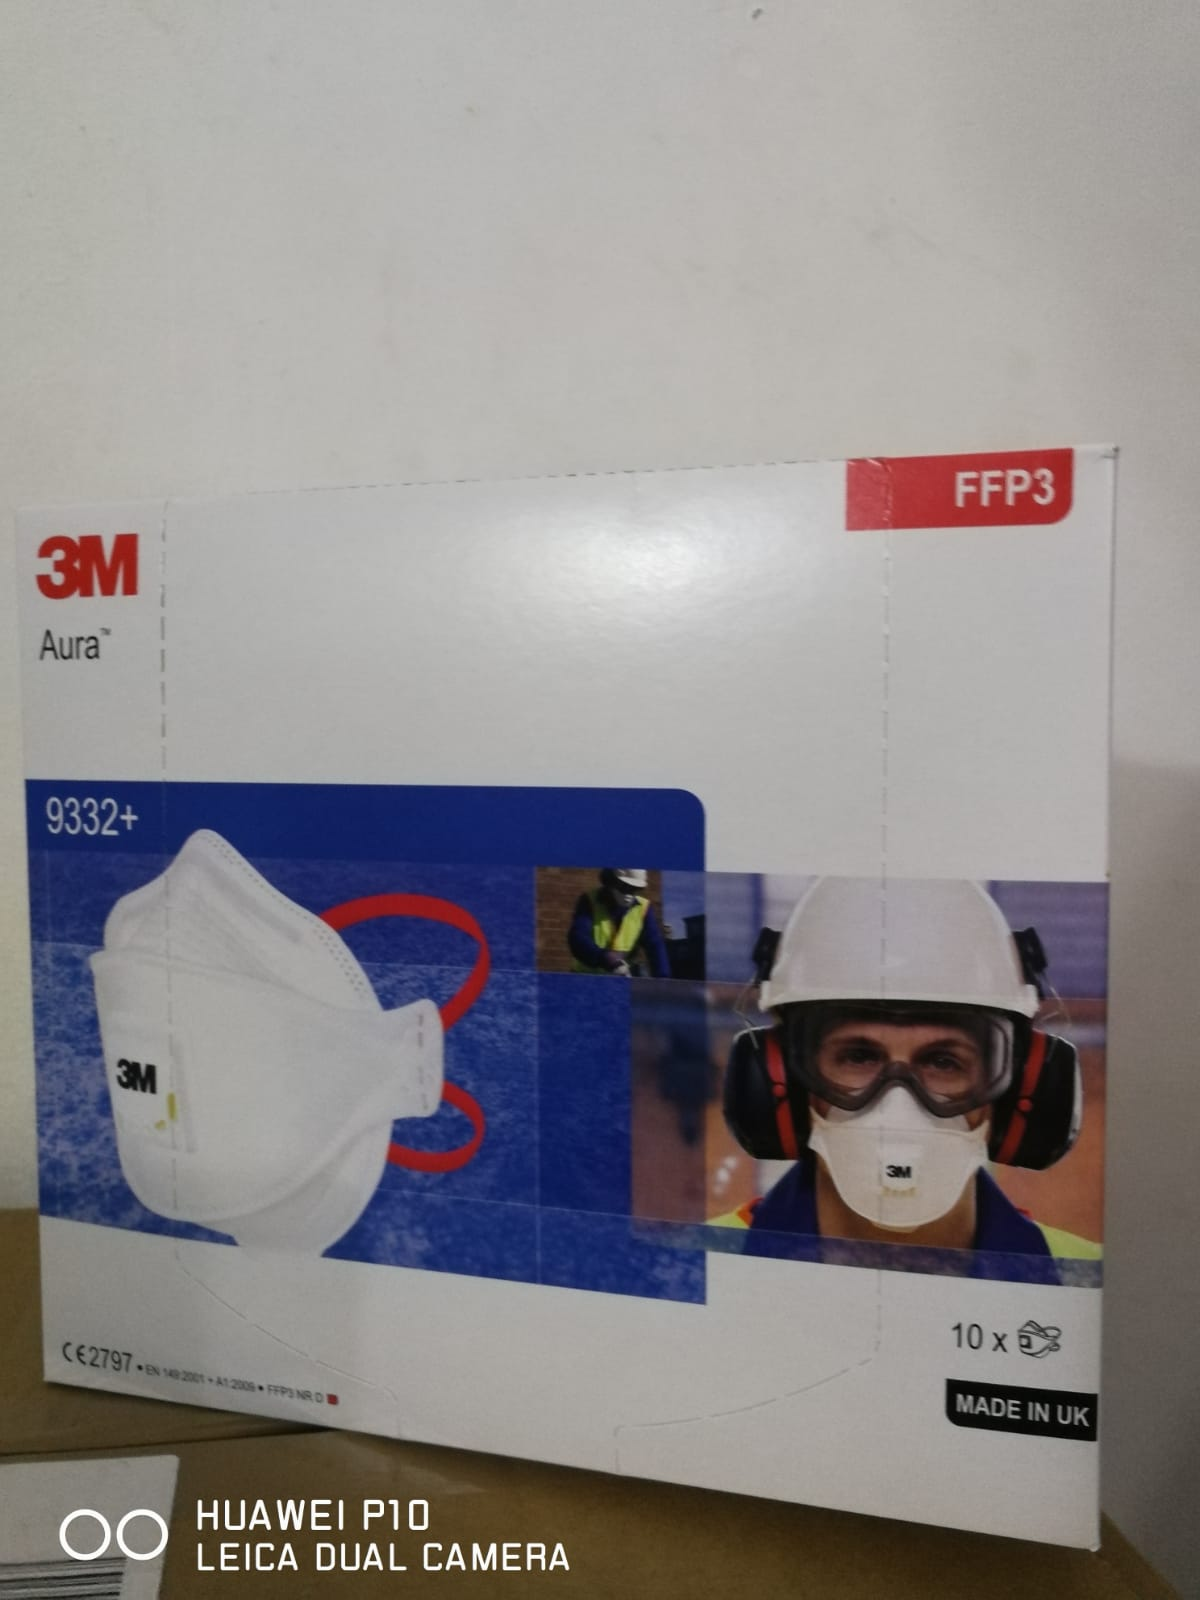 <p>need respirators 3M 9332 + aura Ffp3 original. Volume from 100 thousand to 3 million units, payment through a letter of credit. Need to deliver to Romania, Cluj Airport</p>